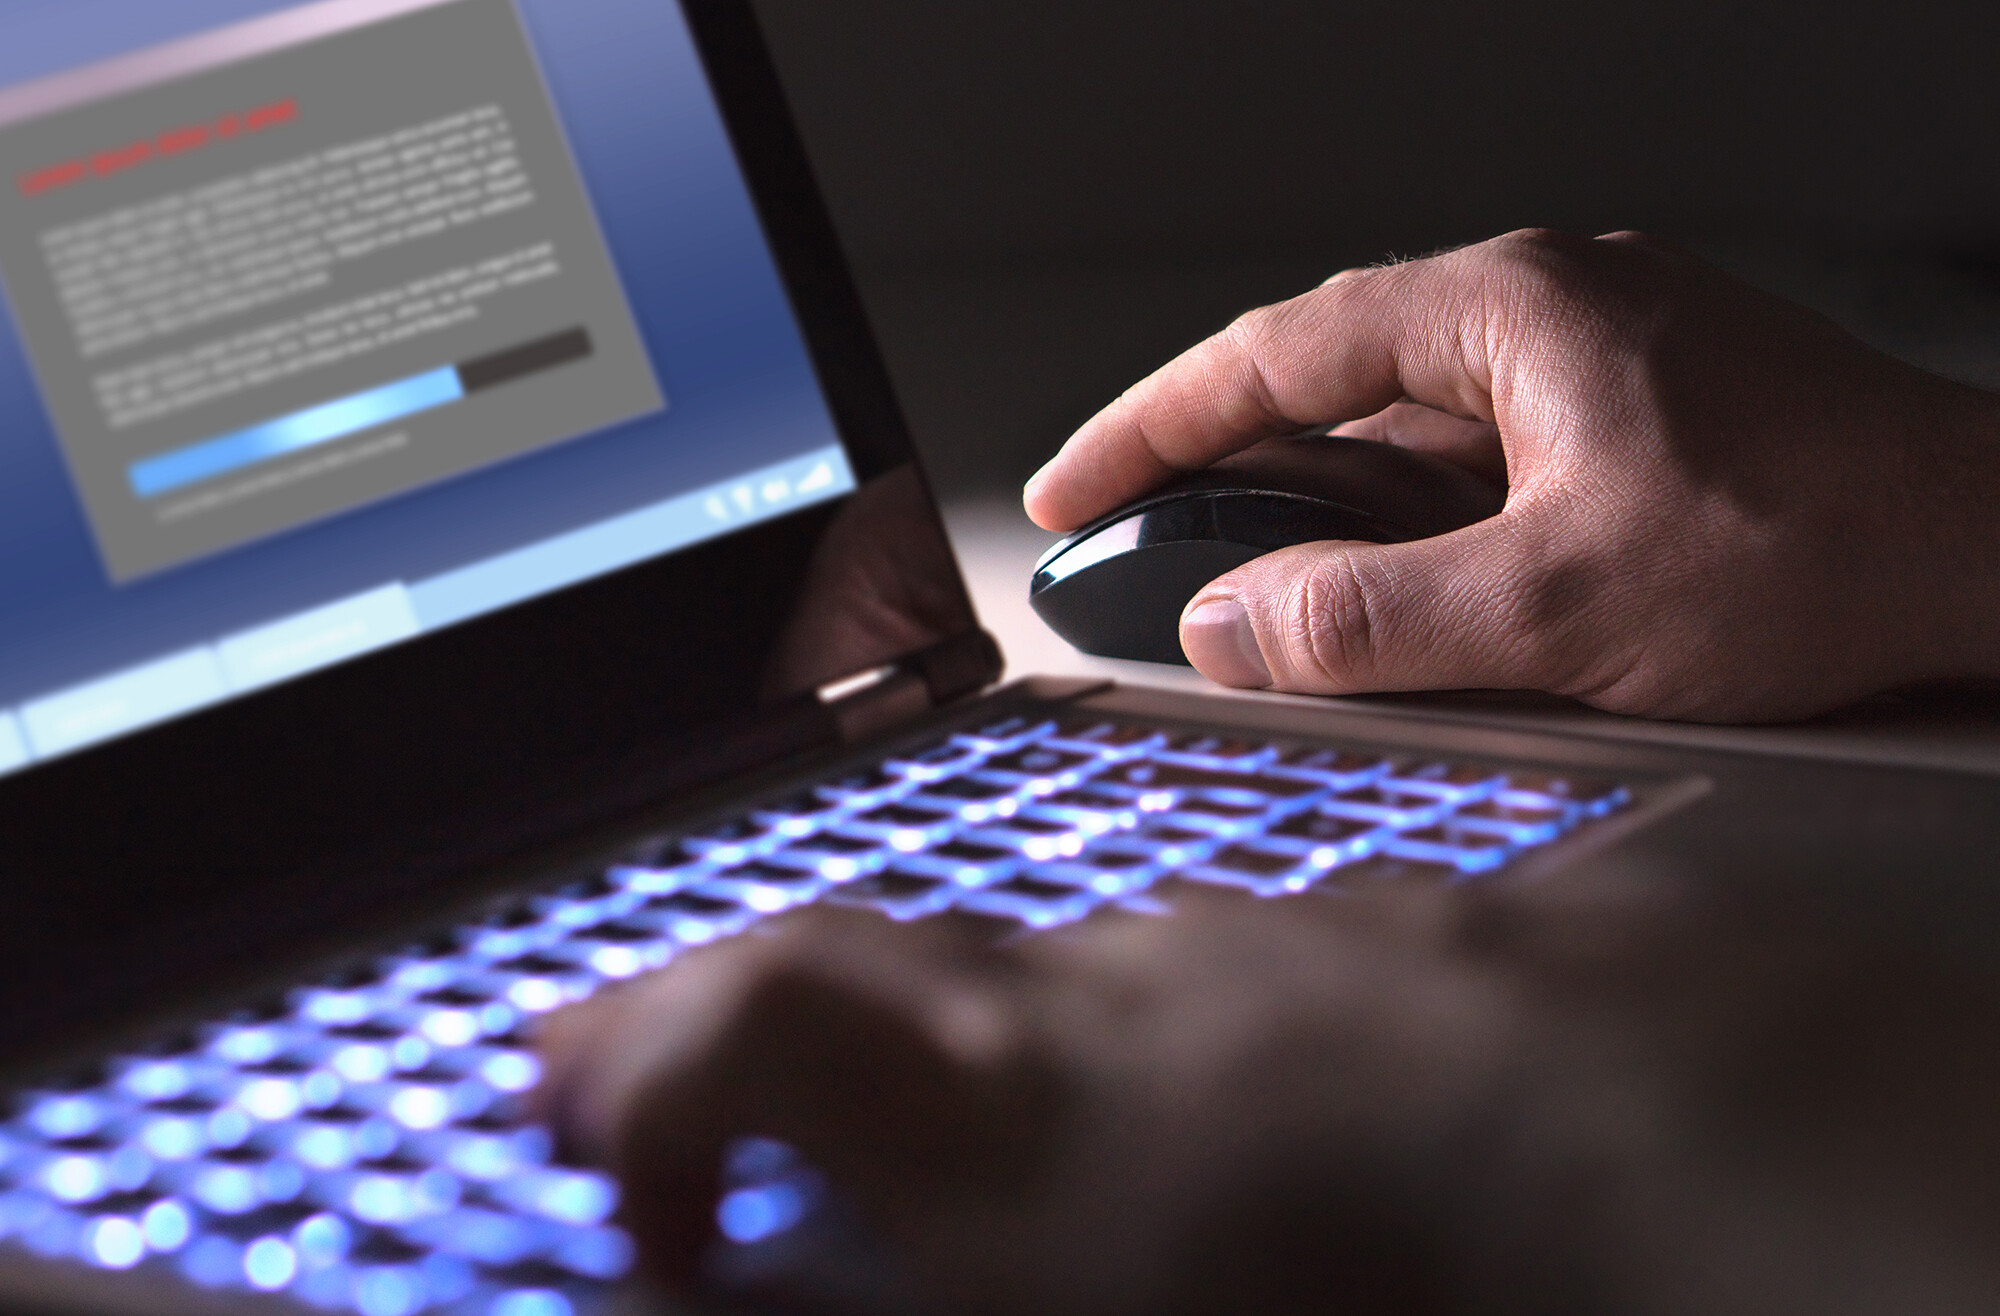 Ransomware group that carried out major attacks reappears after brief absence